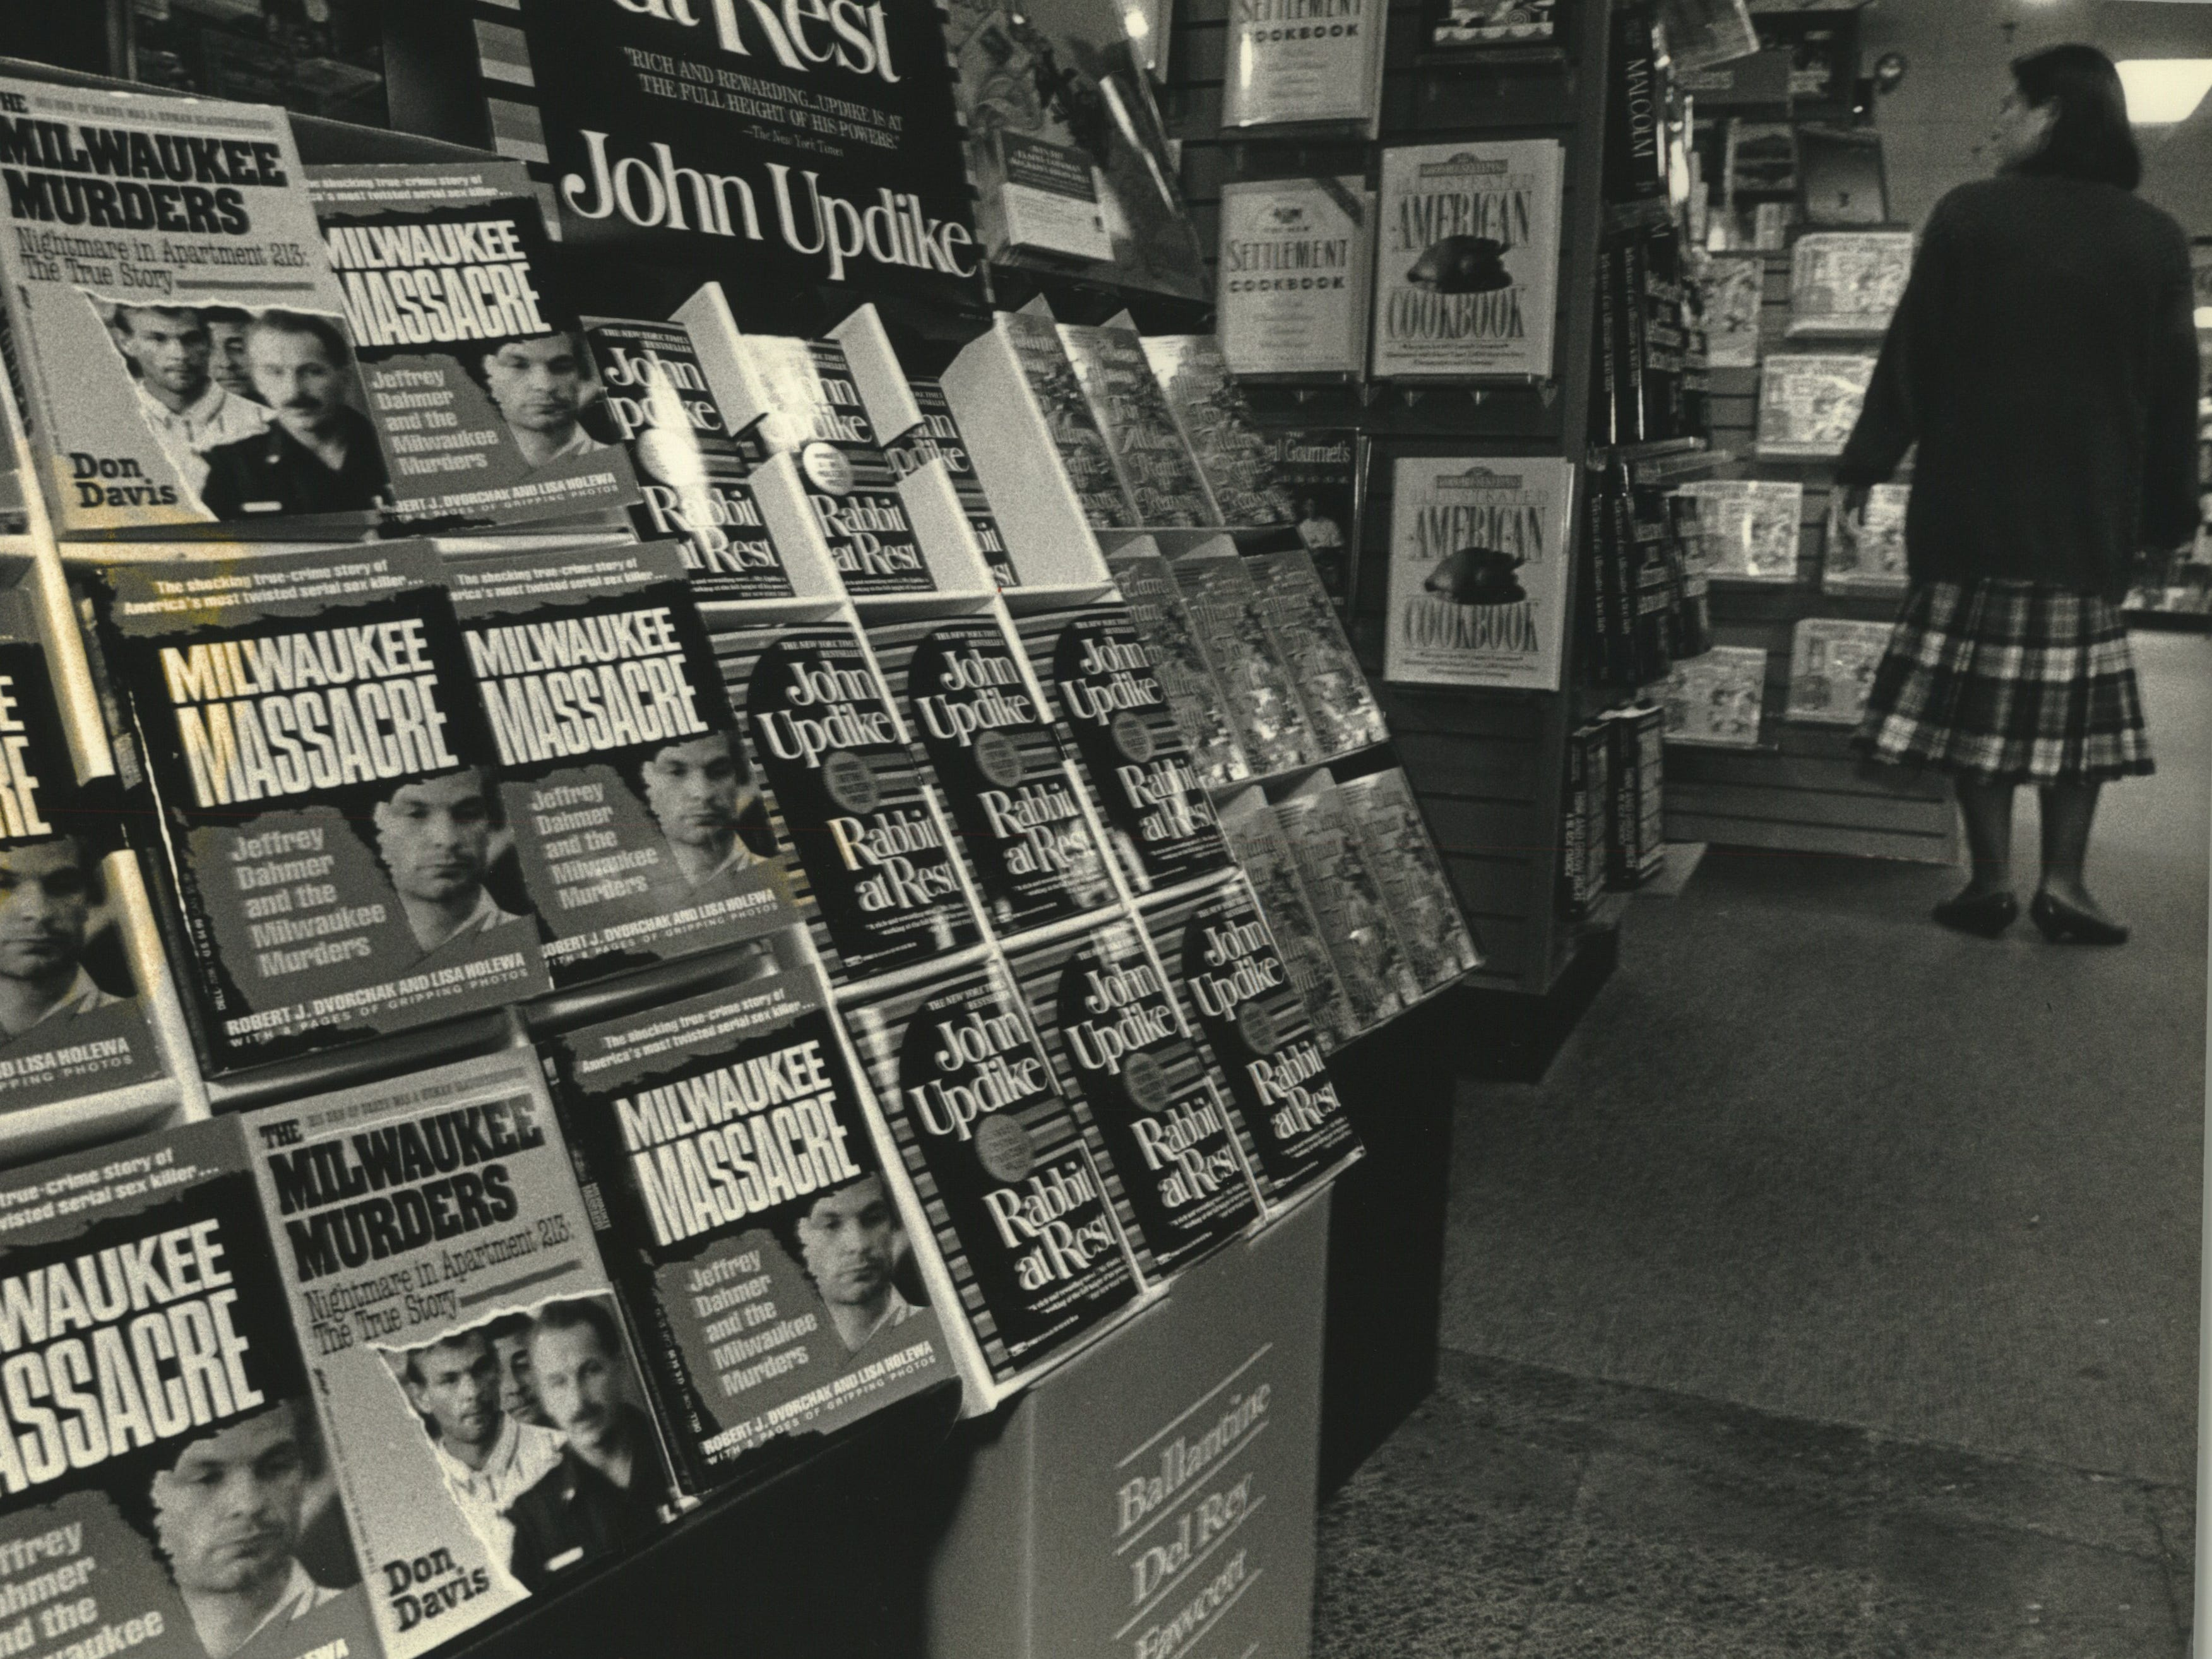 The shelves at Waldenbooks in The Grand Avenue Mall are lined with two new books on the Jeffrey L. Dahmer murder case. Sales there and at other book stores have been steady, managers say. Jeffrey L. Dahmer - Miscellaneous. September 25, 1991.